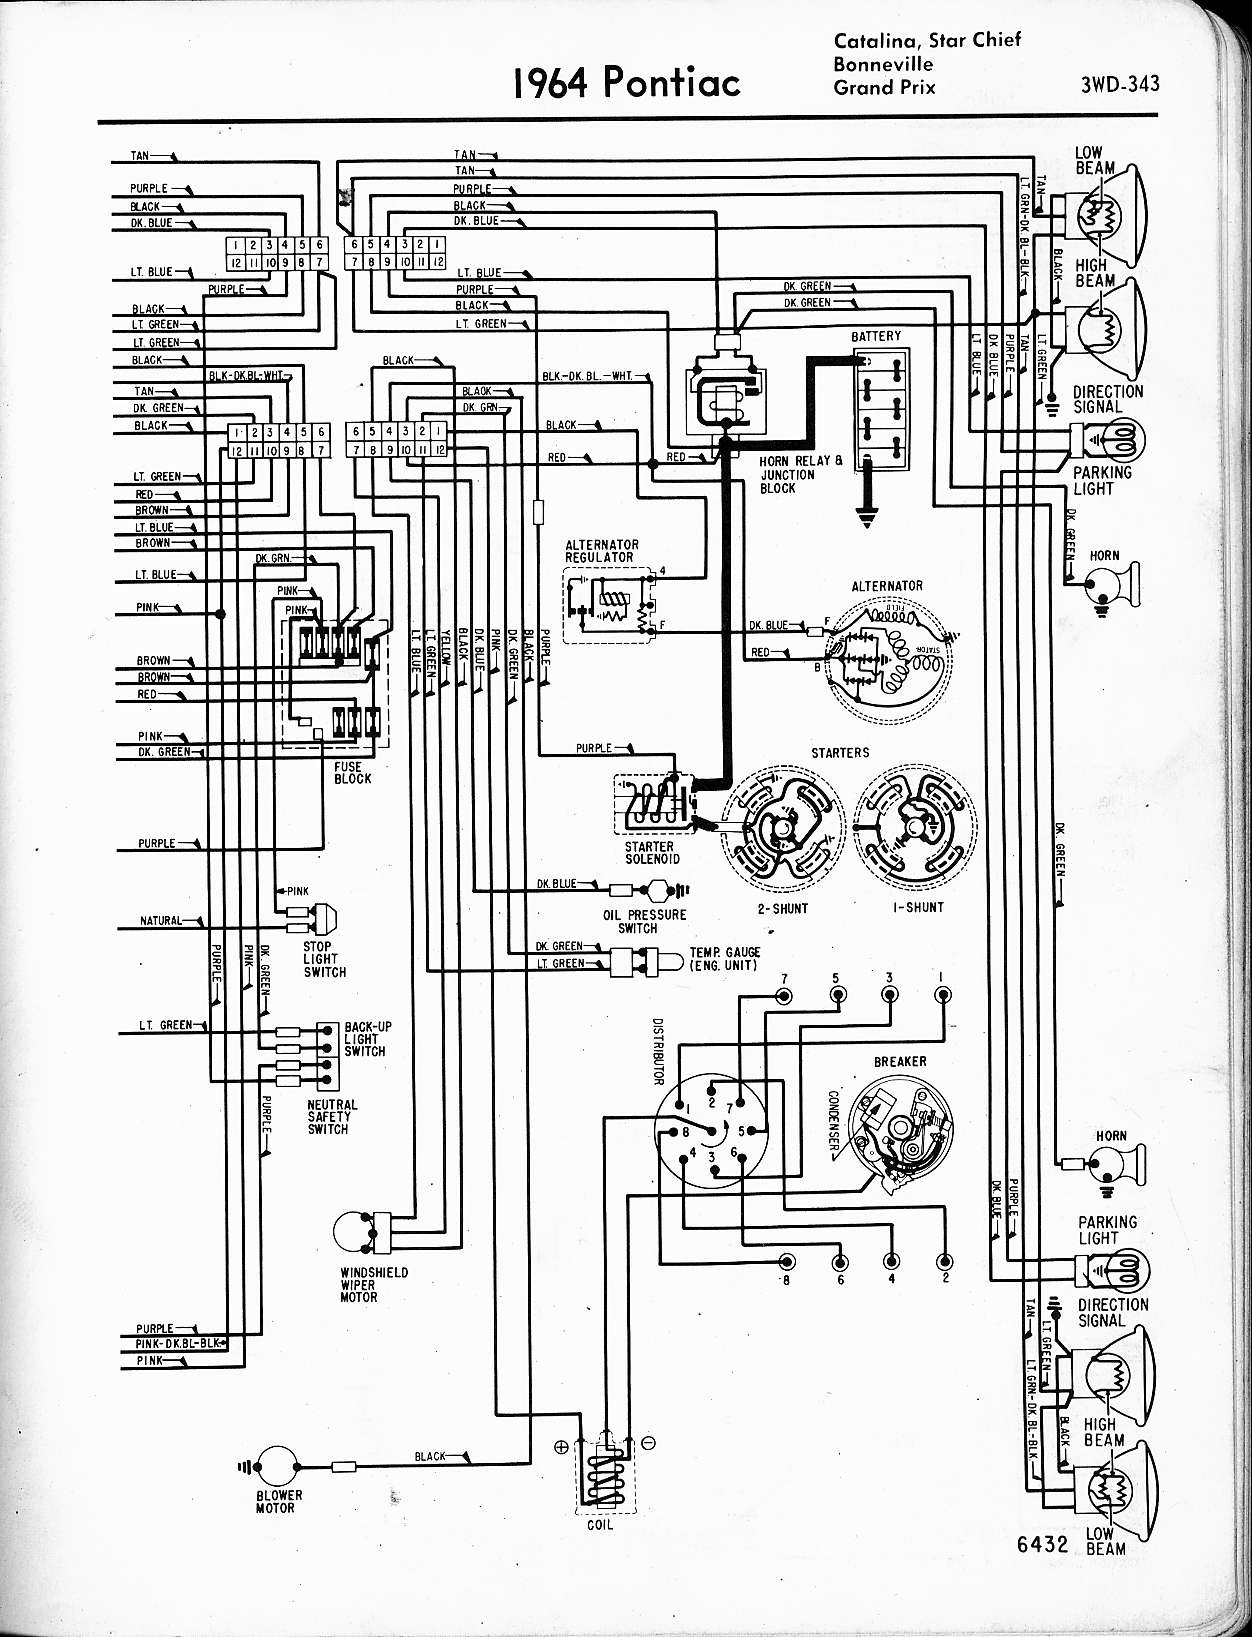 1969 gto wiring diagram 1969 free engine image for user 2004 grand prix wiring diagram fuses #2